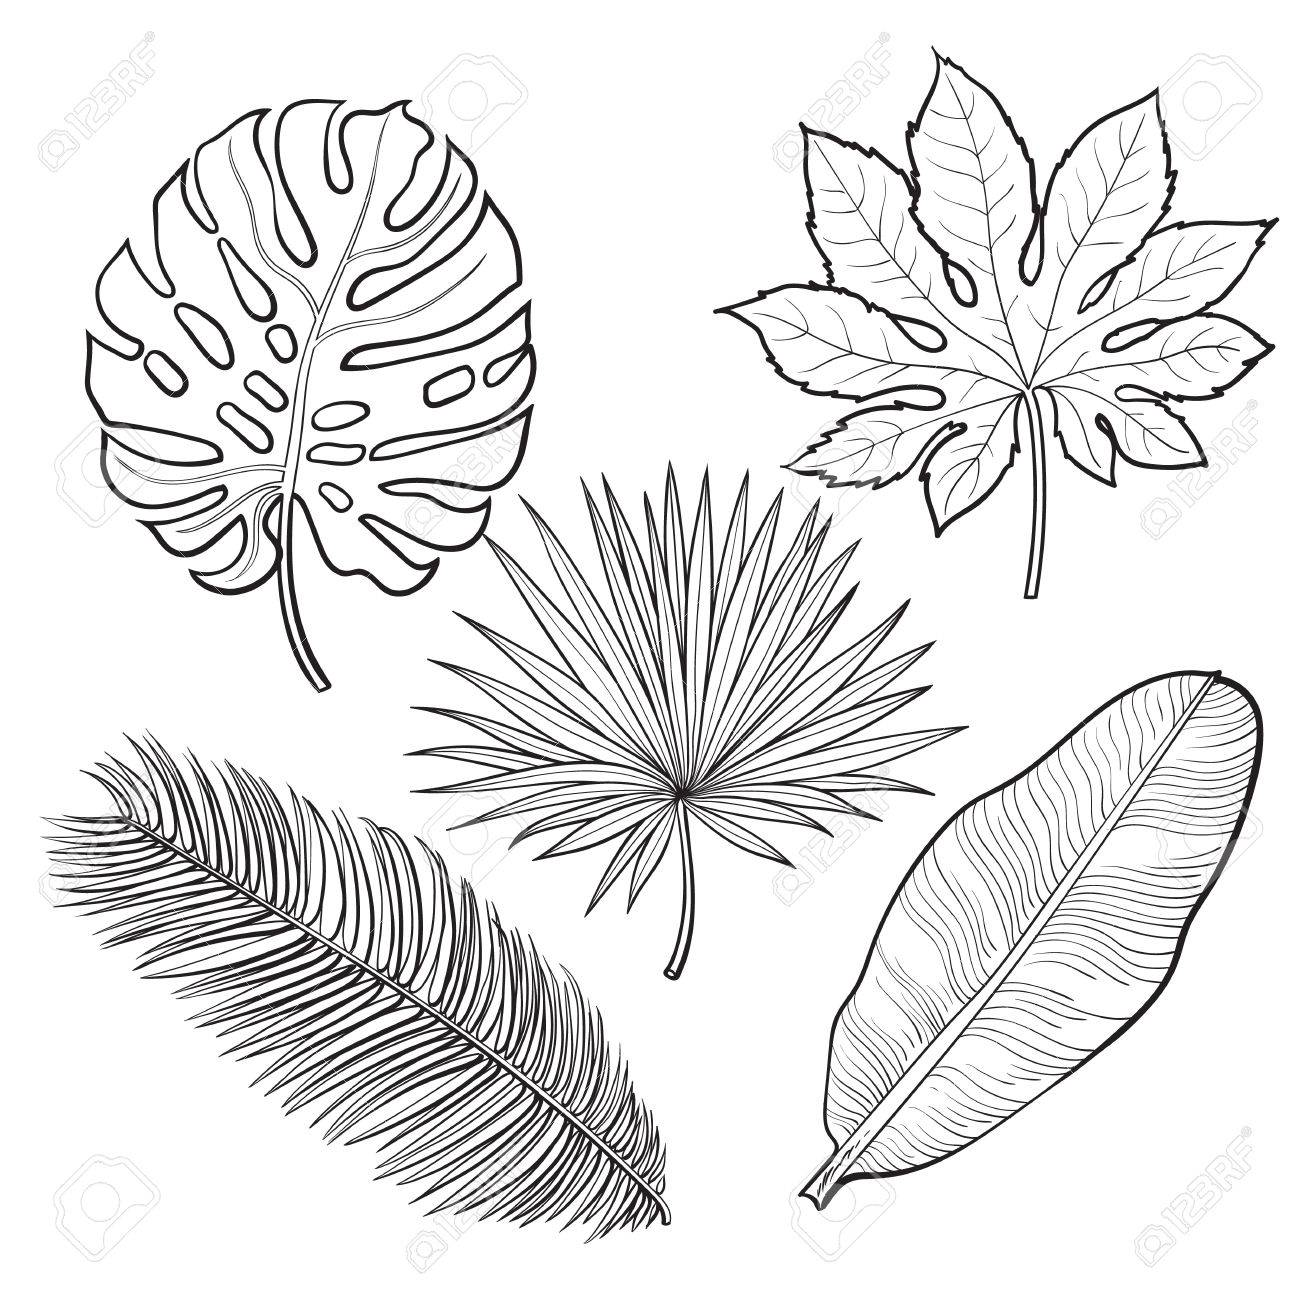 1300x1300 Set Of Tropical Palm Leaves, Sketch Style Vector Illustration